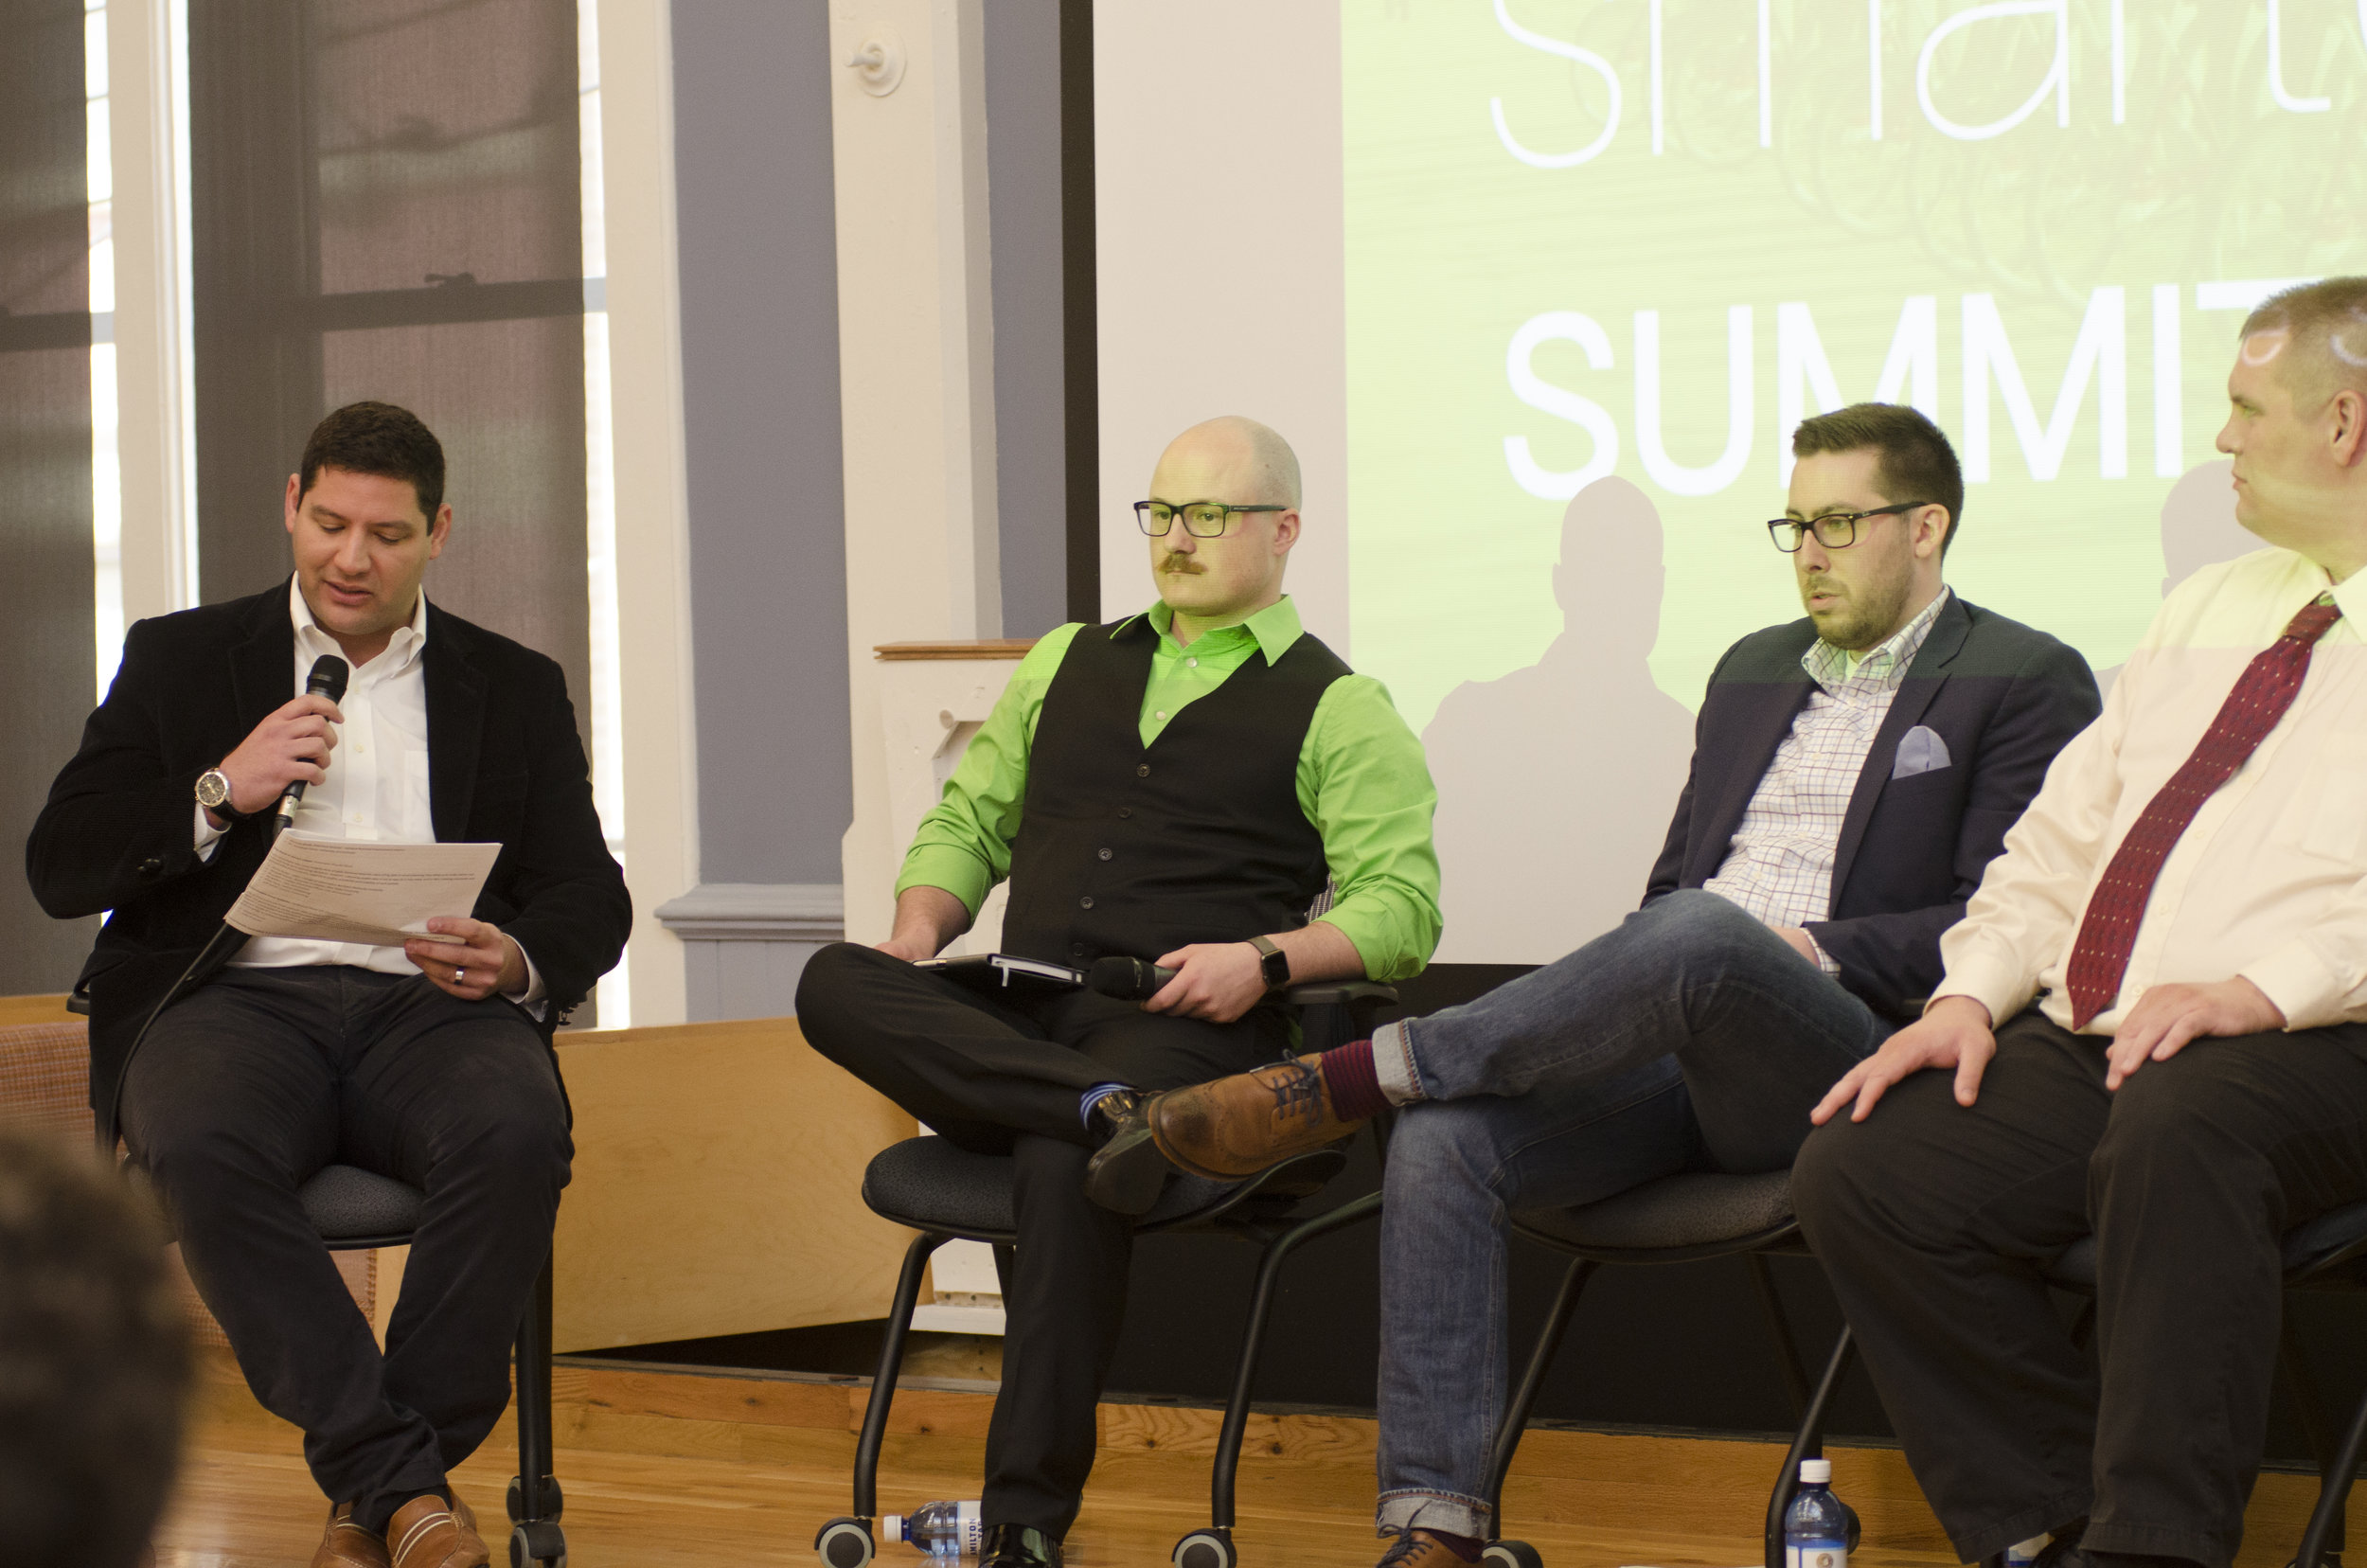 At the Smart Cincy Summit in April, Mitch Kominsky from Venture Smarter hosted panelists to discuss Mobility in Smart Cities. Panelists included D Worthington from Loop Global, Pete Metz from the Cincy Regional Chamber, Dr Jonathan Corey from University of Cincinnati, Lyden Foust from Spatial.ai, and Rhonda Binda from Venture Smarter.